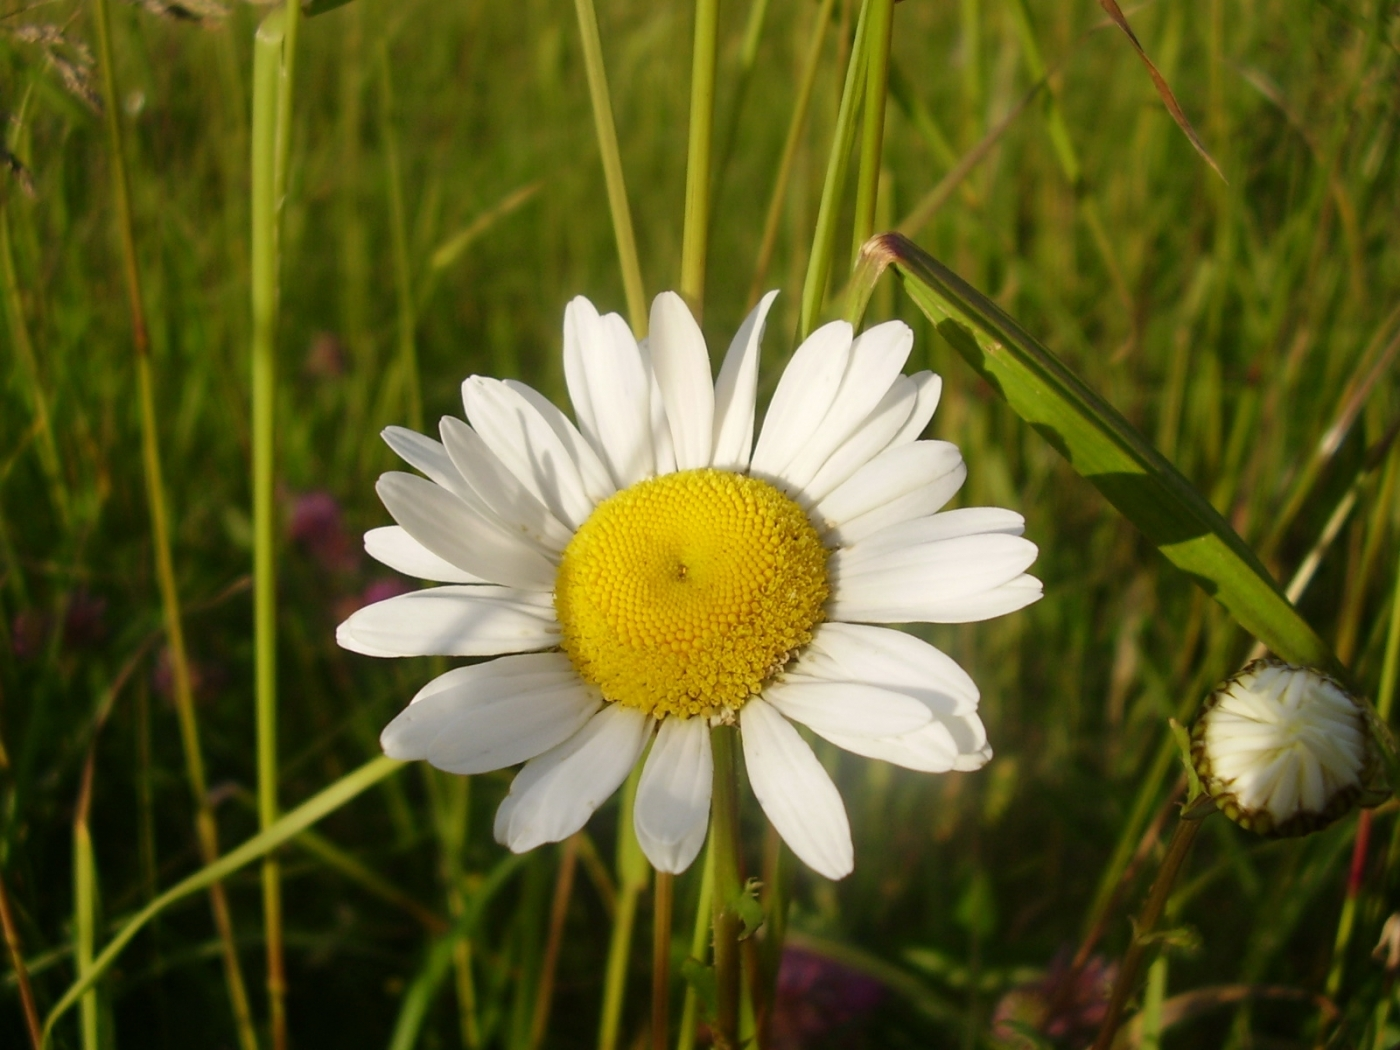 46418 download wallpaper Plants, Flowers, Camomile screensavers and pictures for free